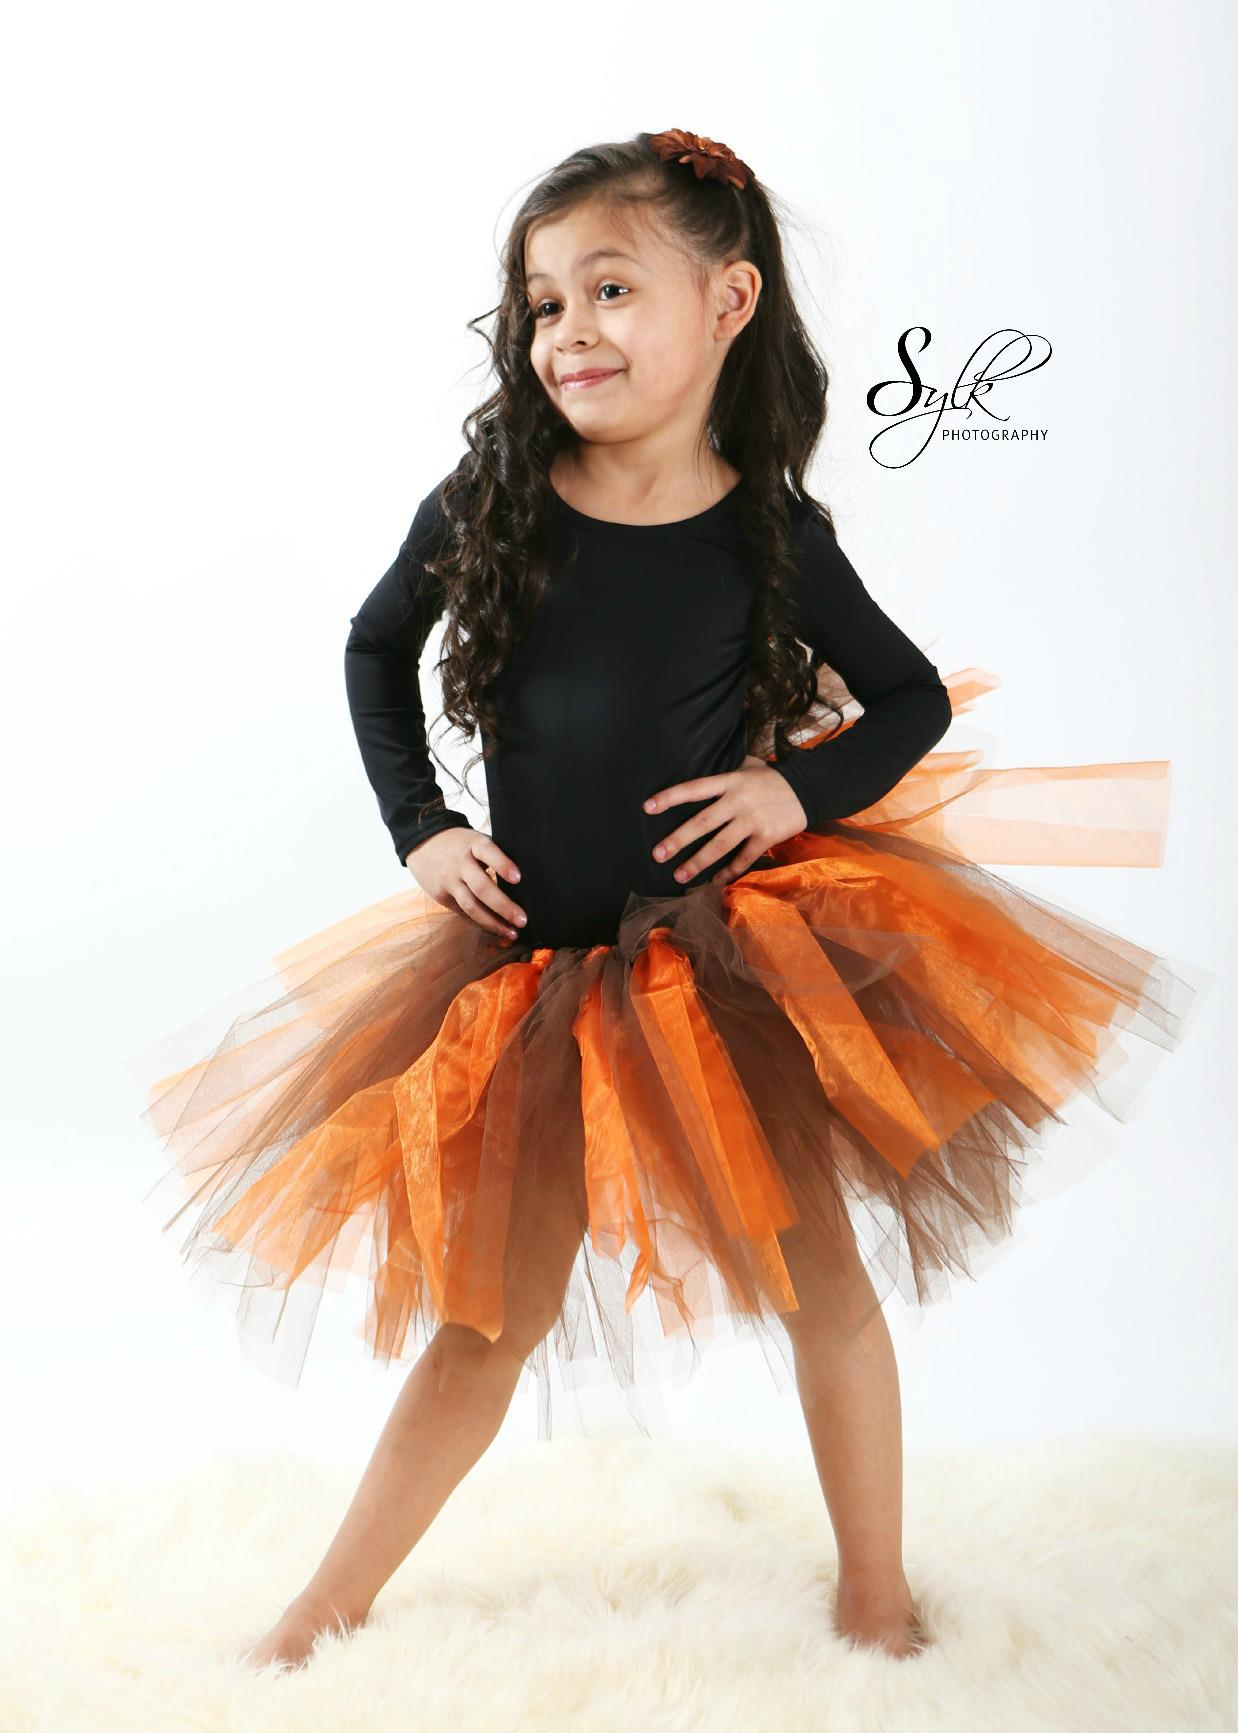 Fall In Tutu set $25